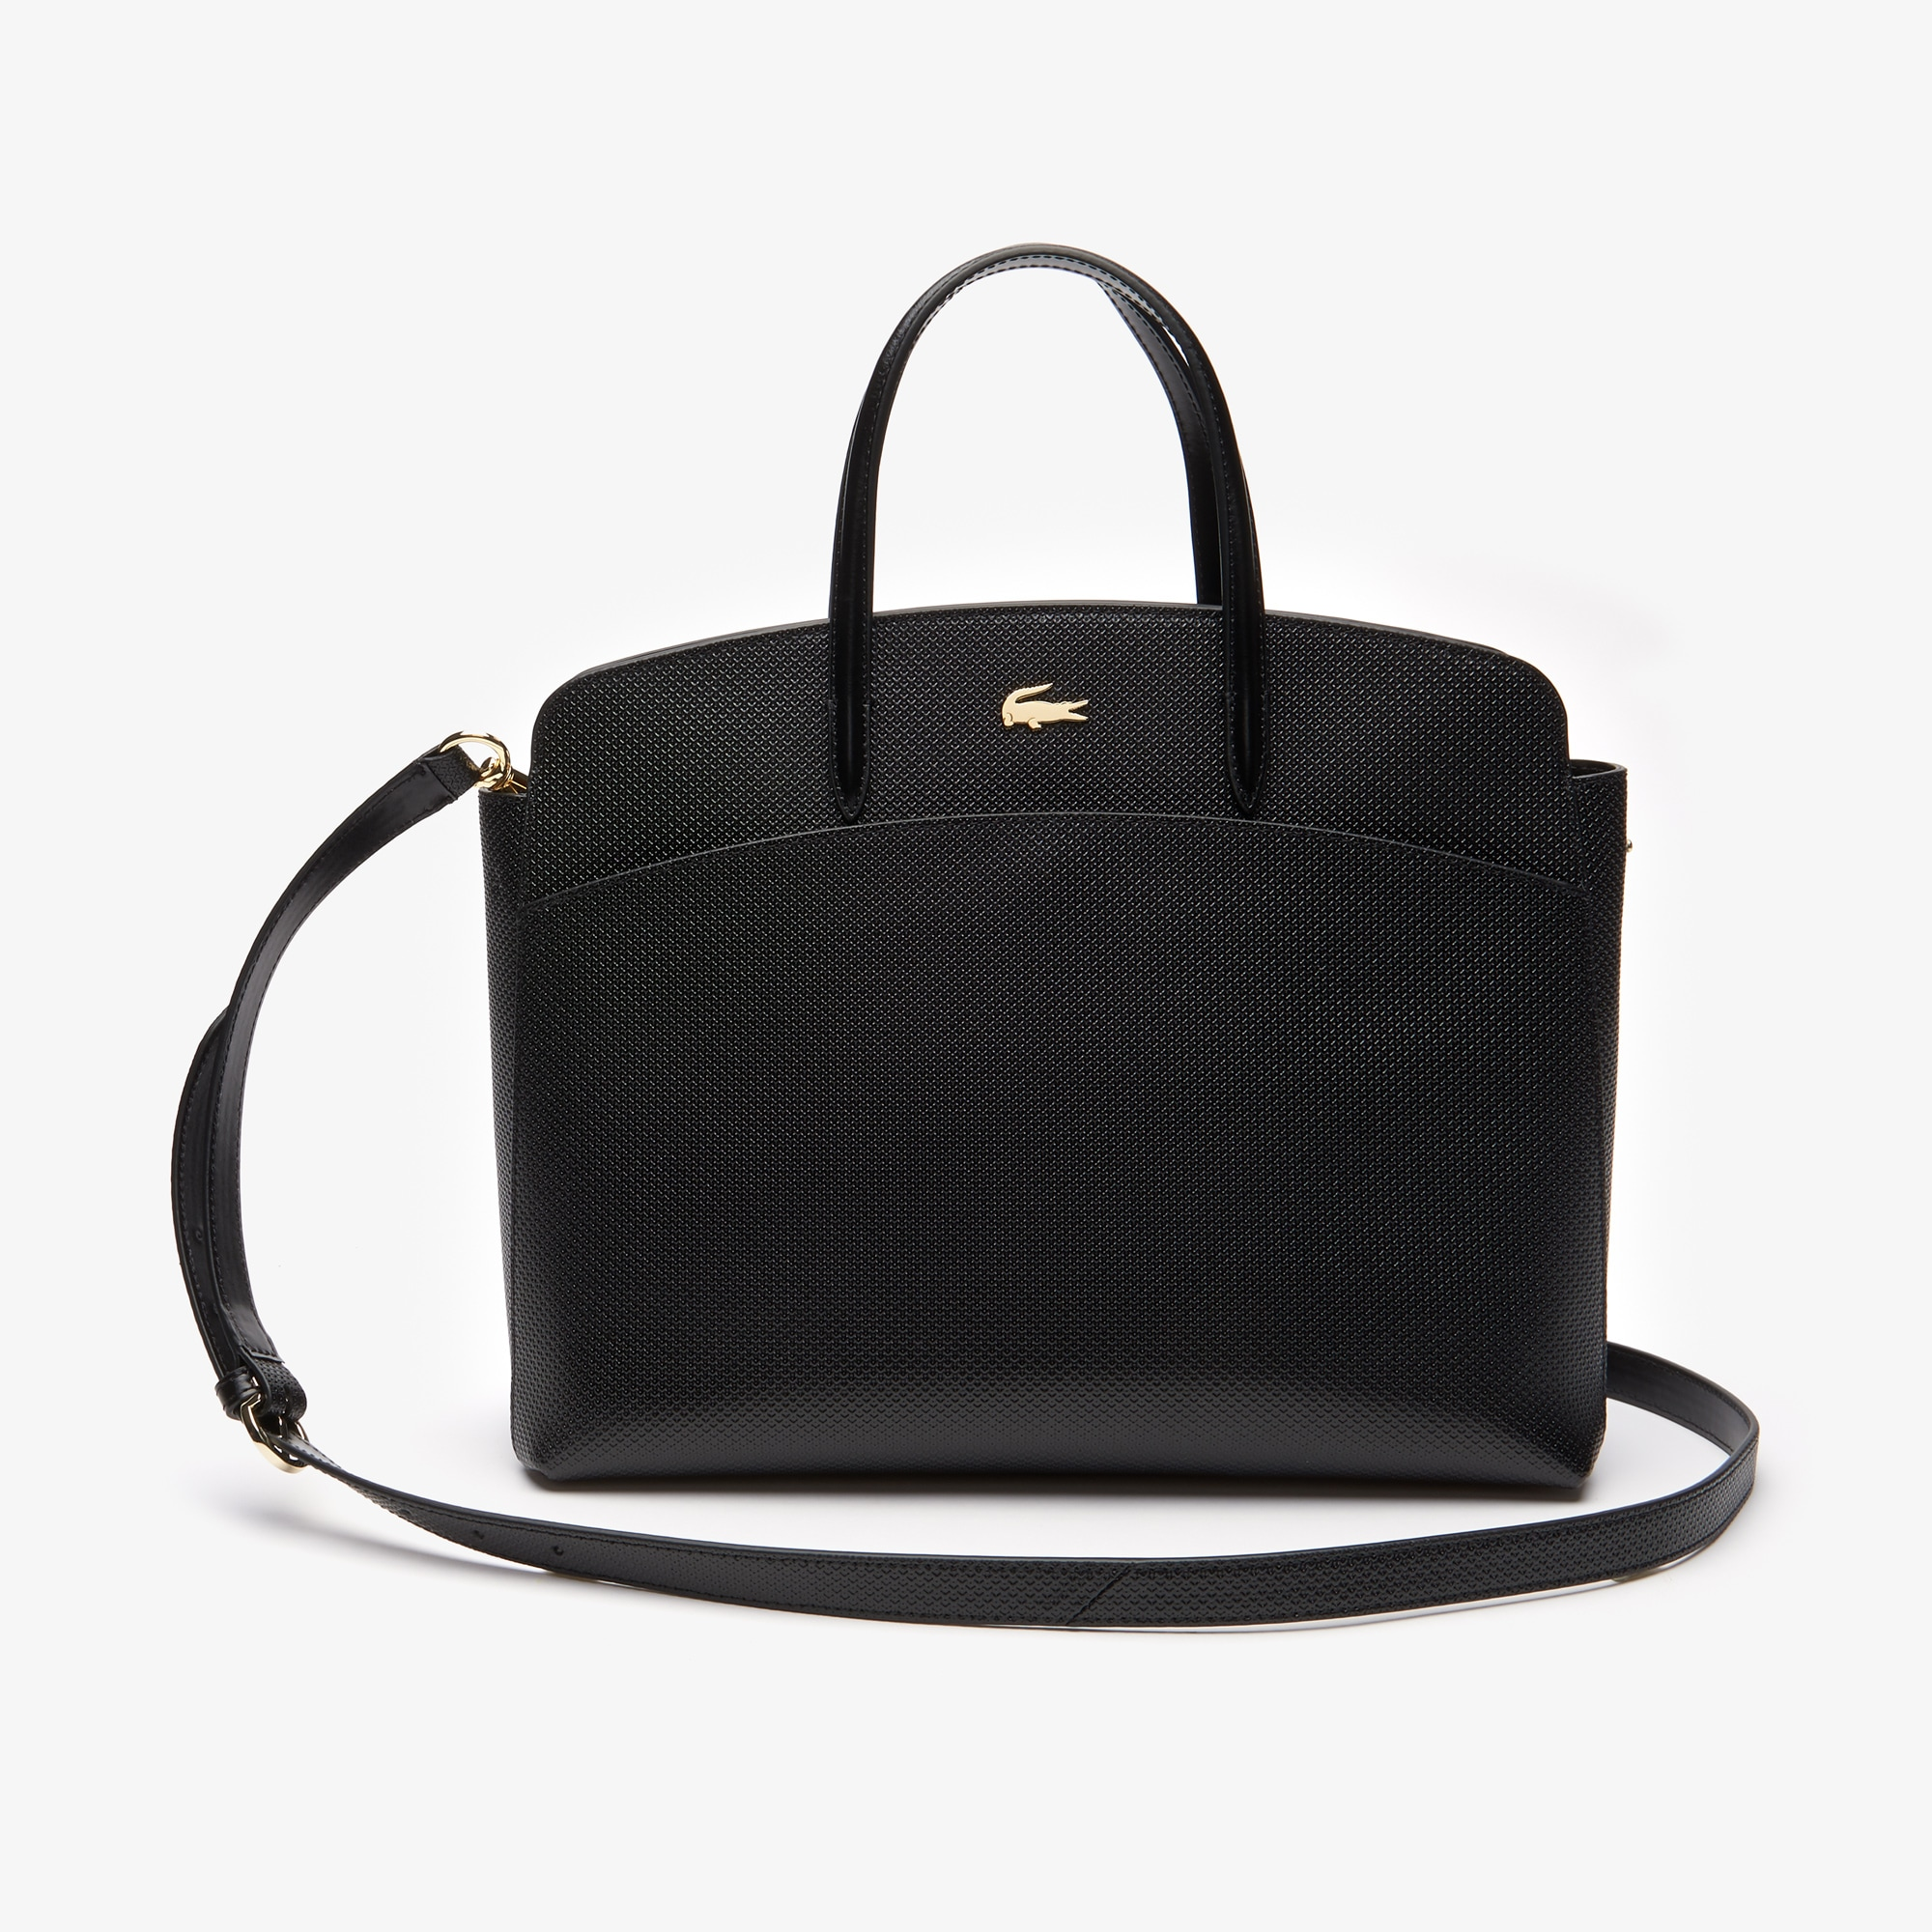 라코스테 Lacoste Womens Chantaco Pique Leather Zip Pocket Tote Bag,black